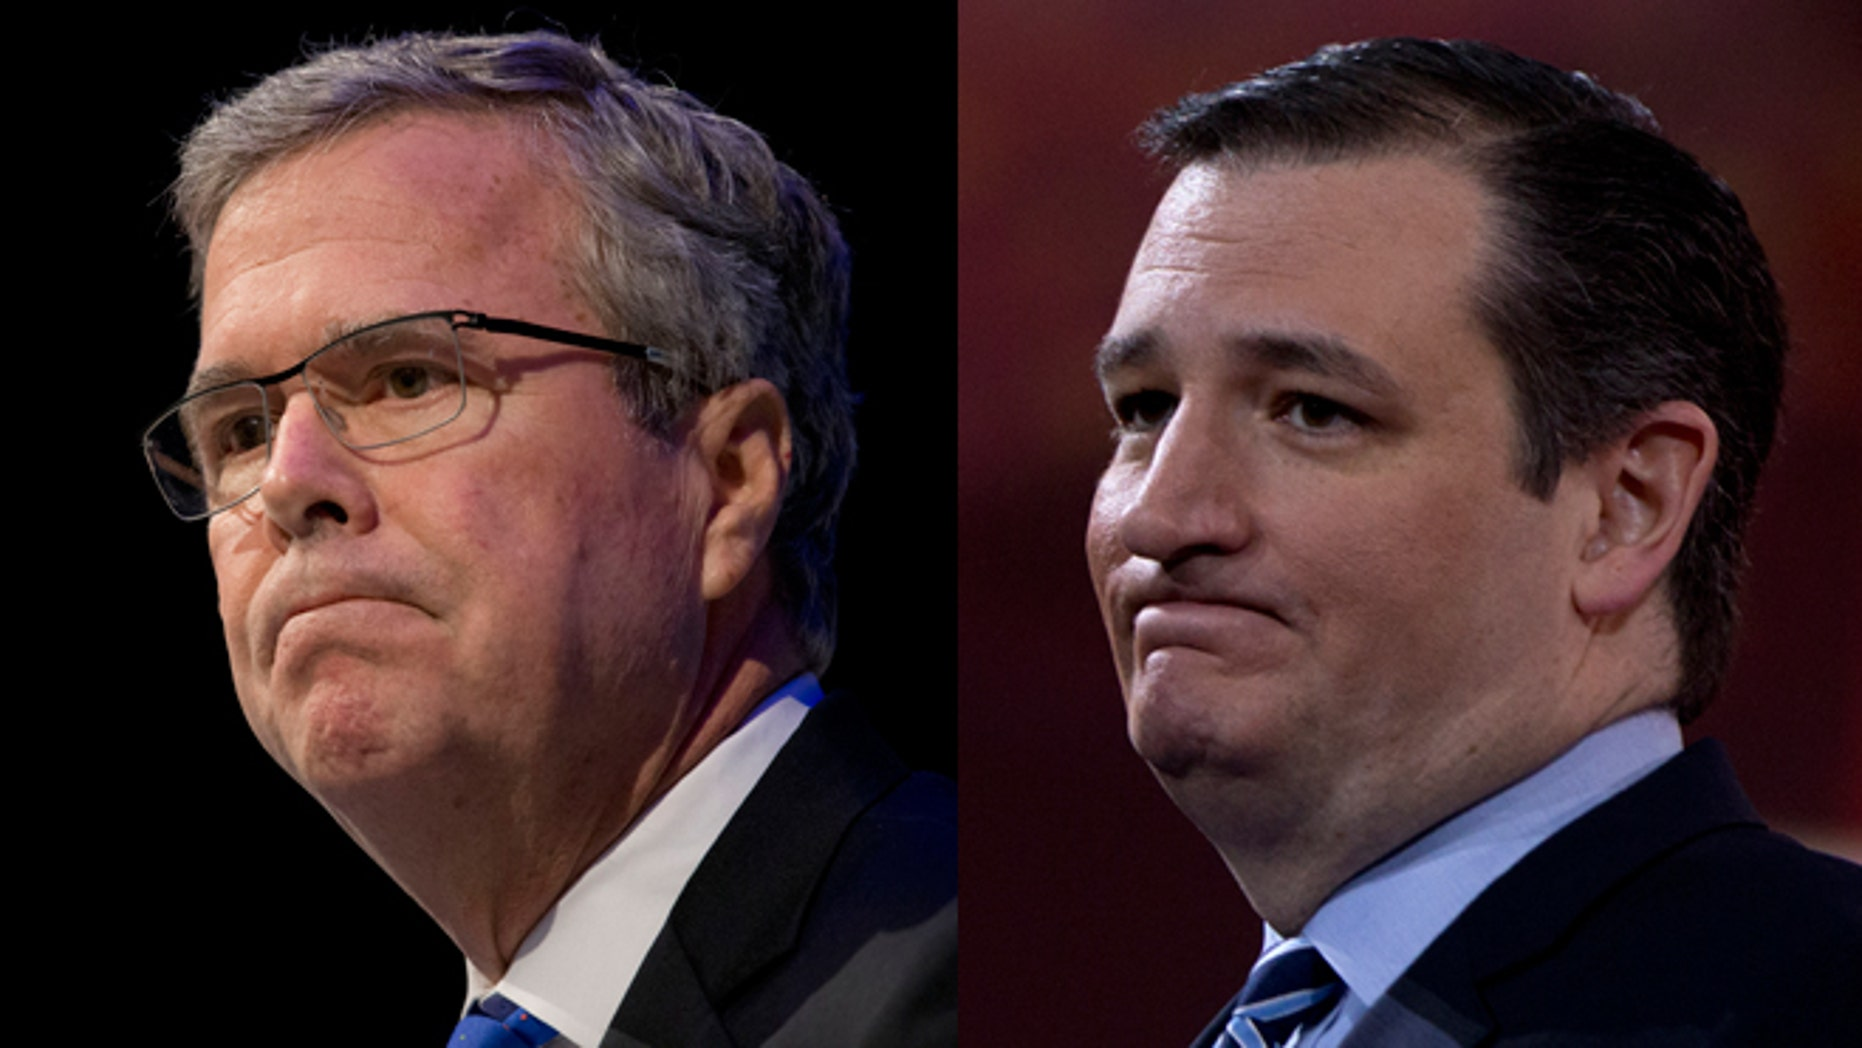 Left: Former Florida Gov. Jeb Bush. (AP Photo/Paul Sancya, File) Right: Sen. Ted Cruz, R-Texas pauses as he speaks during the Conservative Political Action Conference (CPAC) in National Harbor, Md., Thursday, Feb. 26, 2015. (AP Photo/Carolyn Kaster)